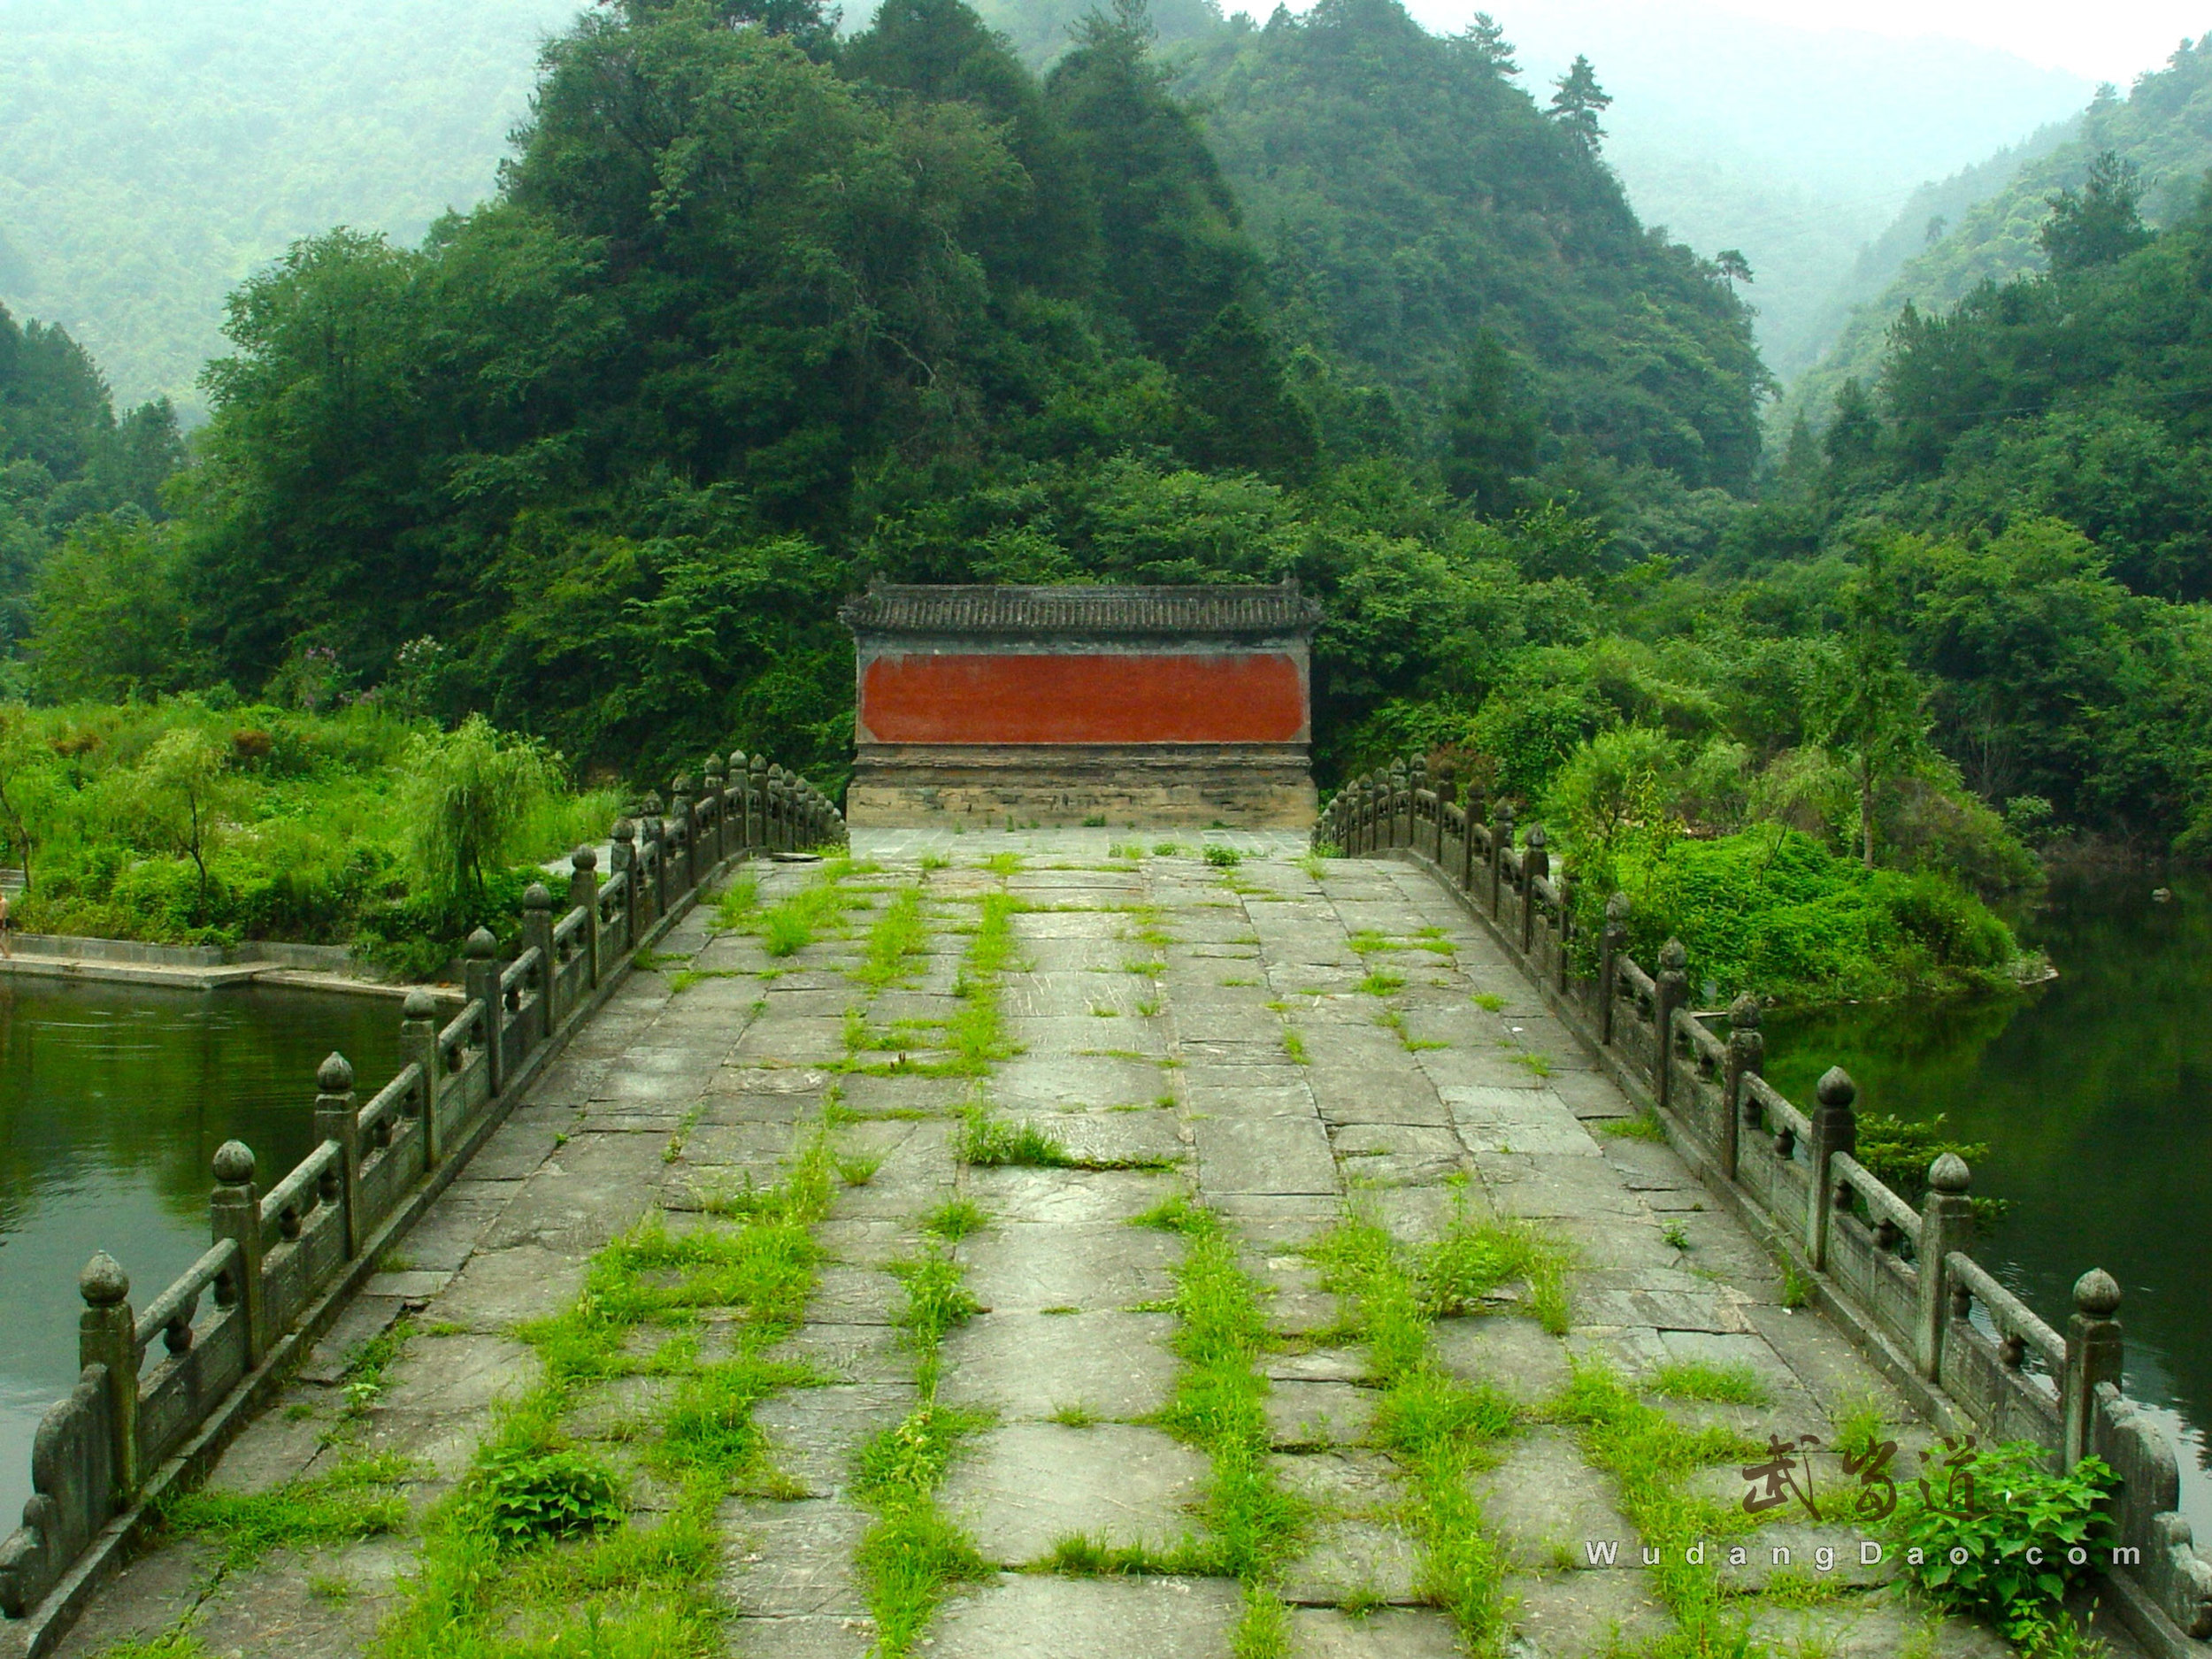 Wudang-sword-river-bridge2.jpg